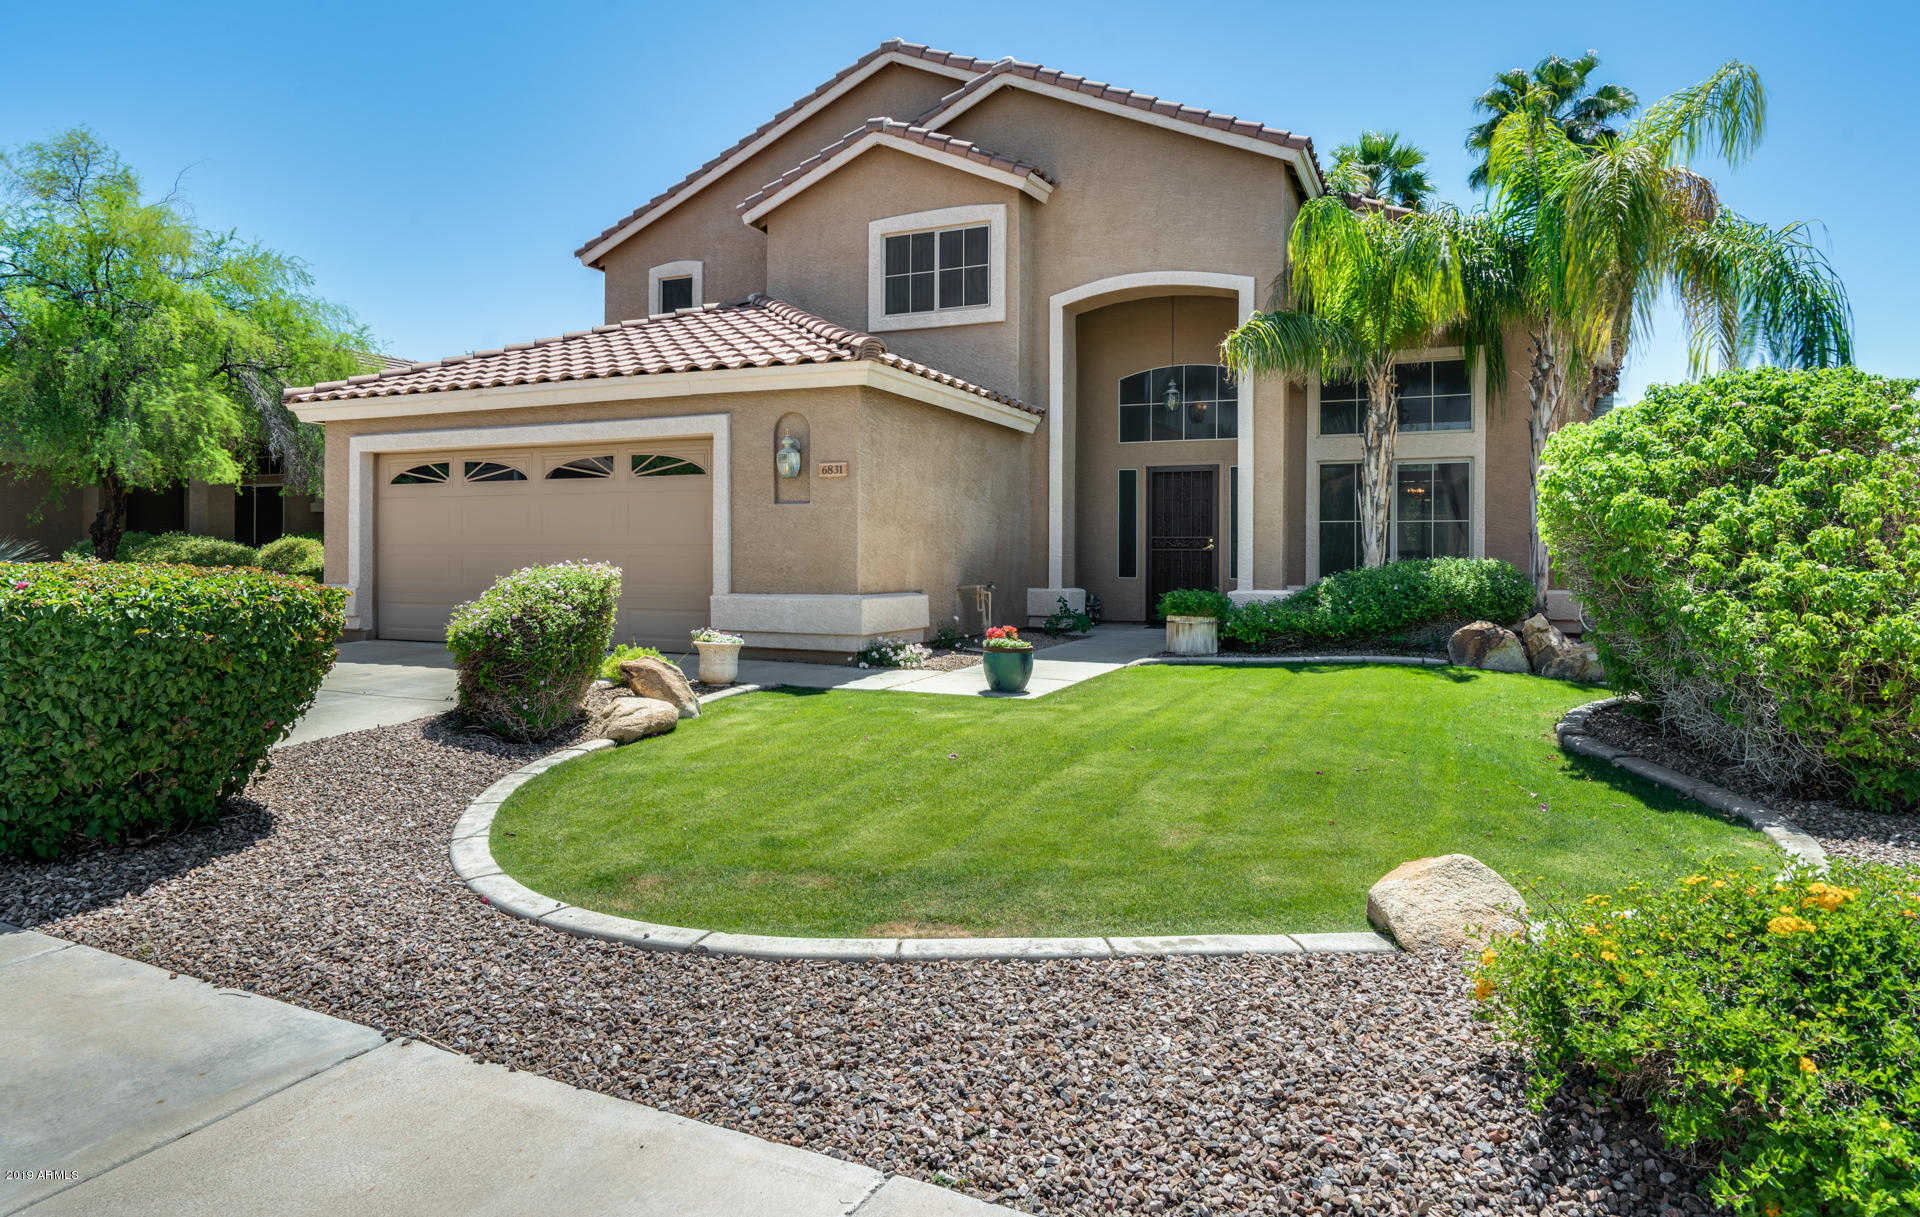 $358,500 - 4Br/3Ba - Home for Sale in Sienna, Glendale